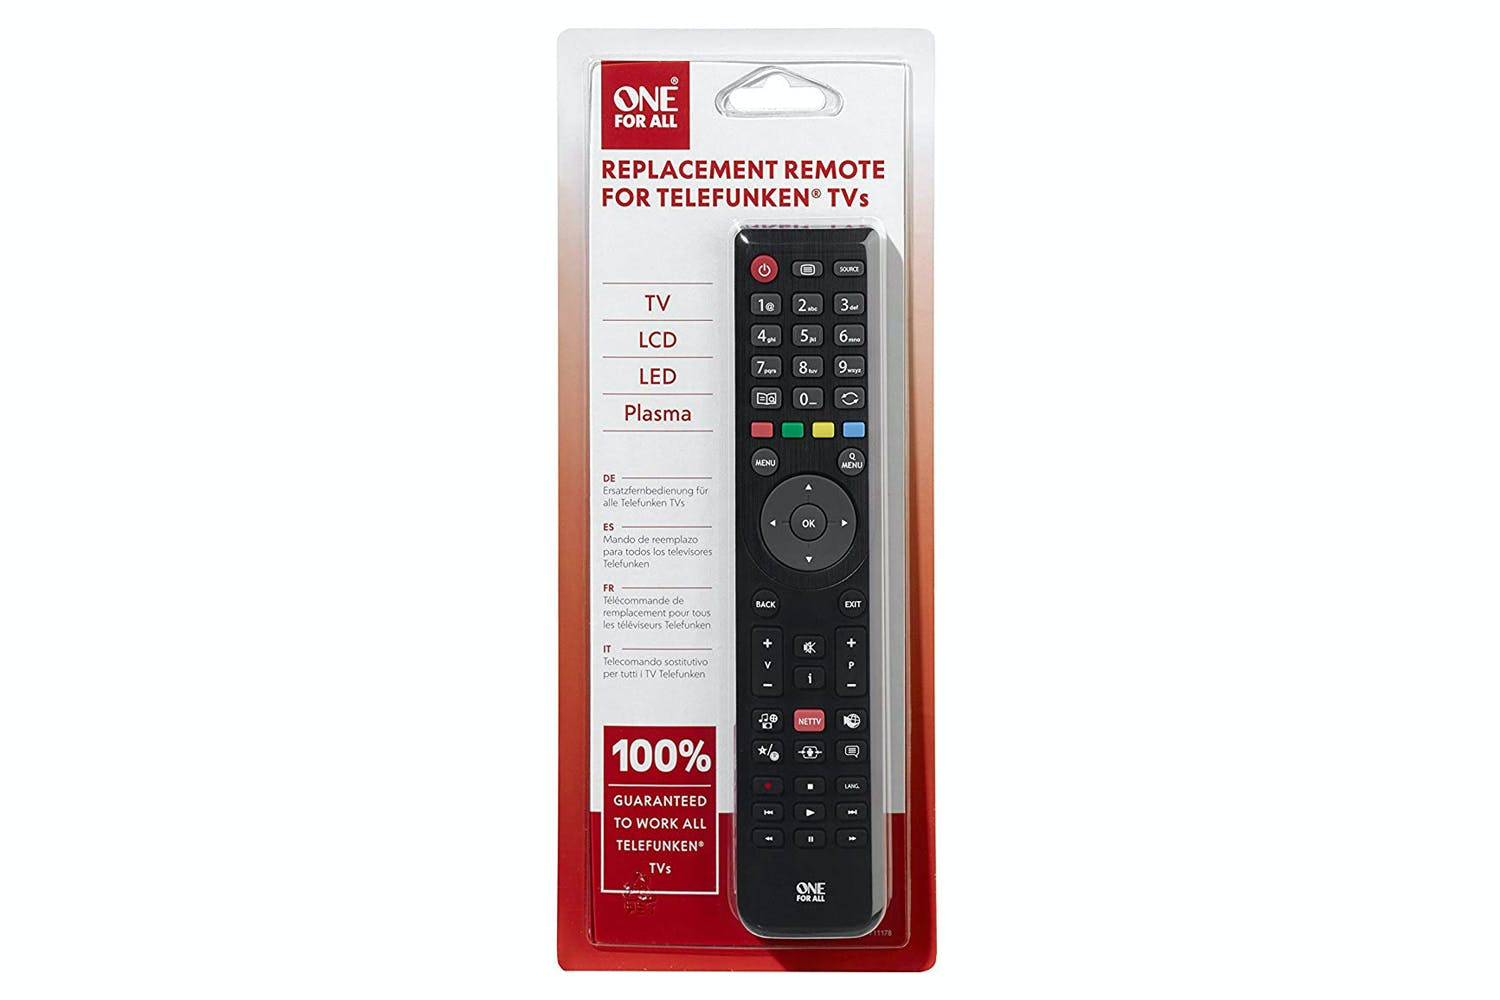 One For All Telefunken TV Replacement Remote